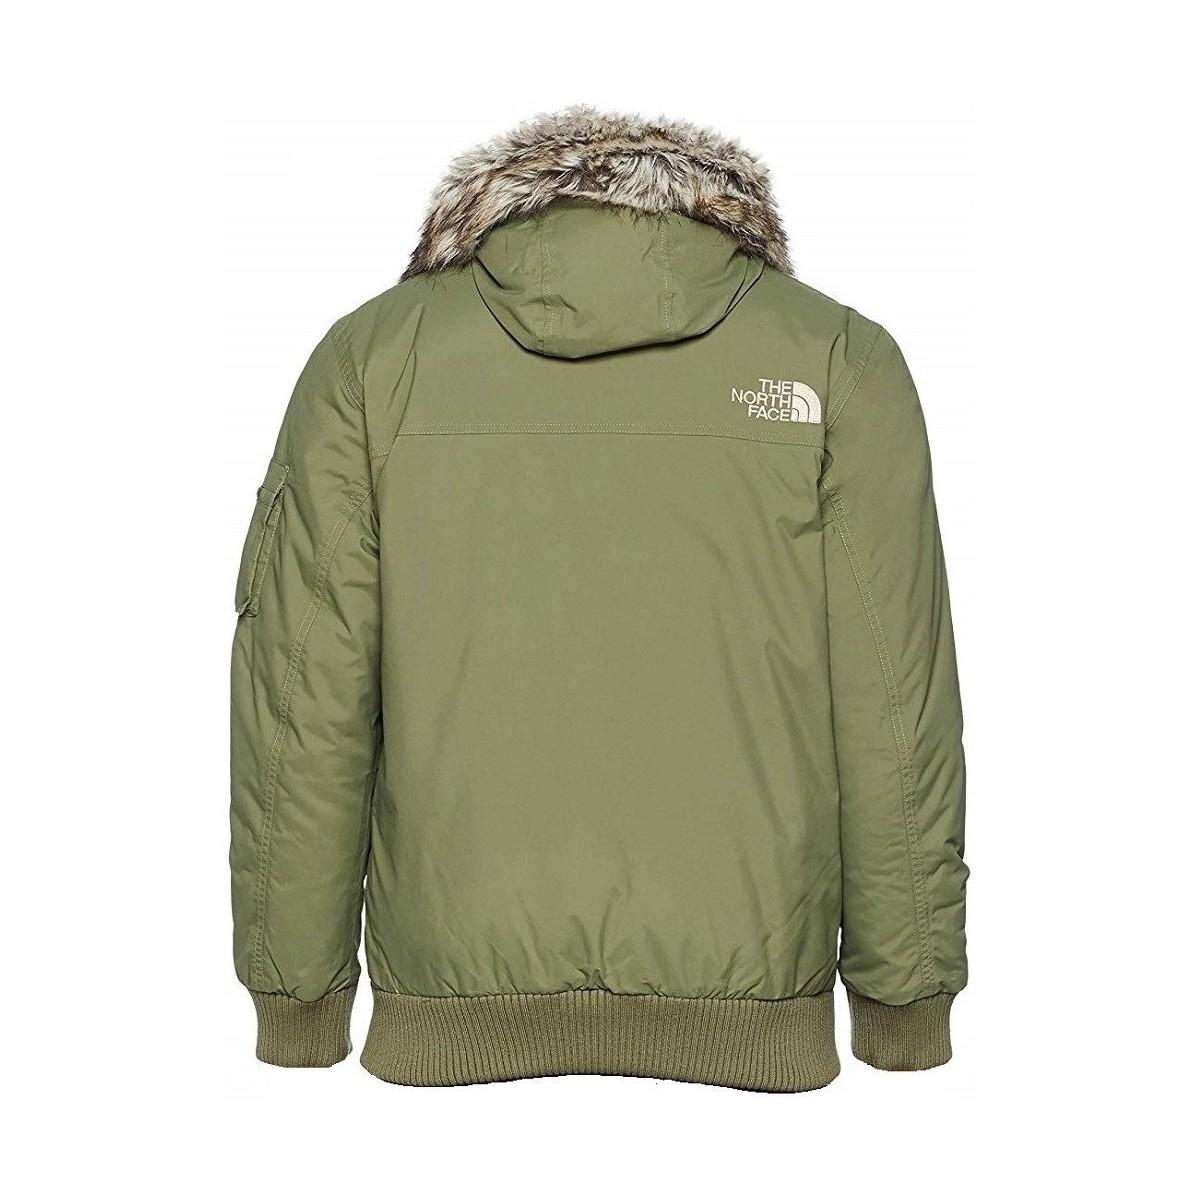 7d62f49302 The North Face Gotham Men's Parka In Multicolour in Green for Men - Lyst